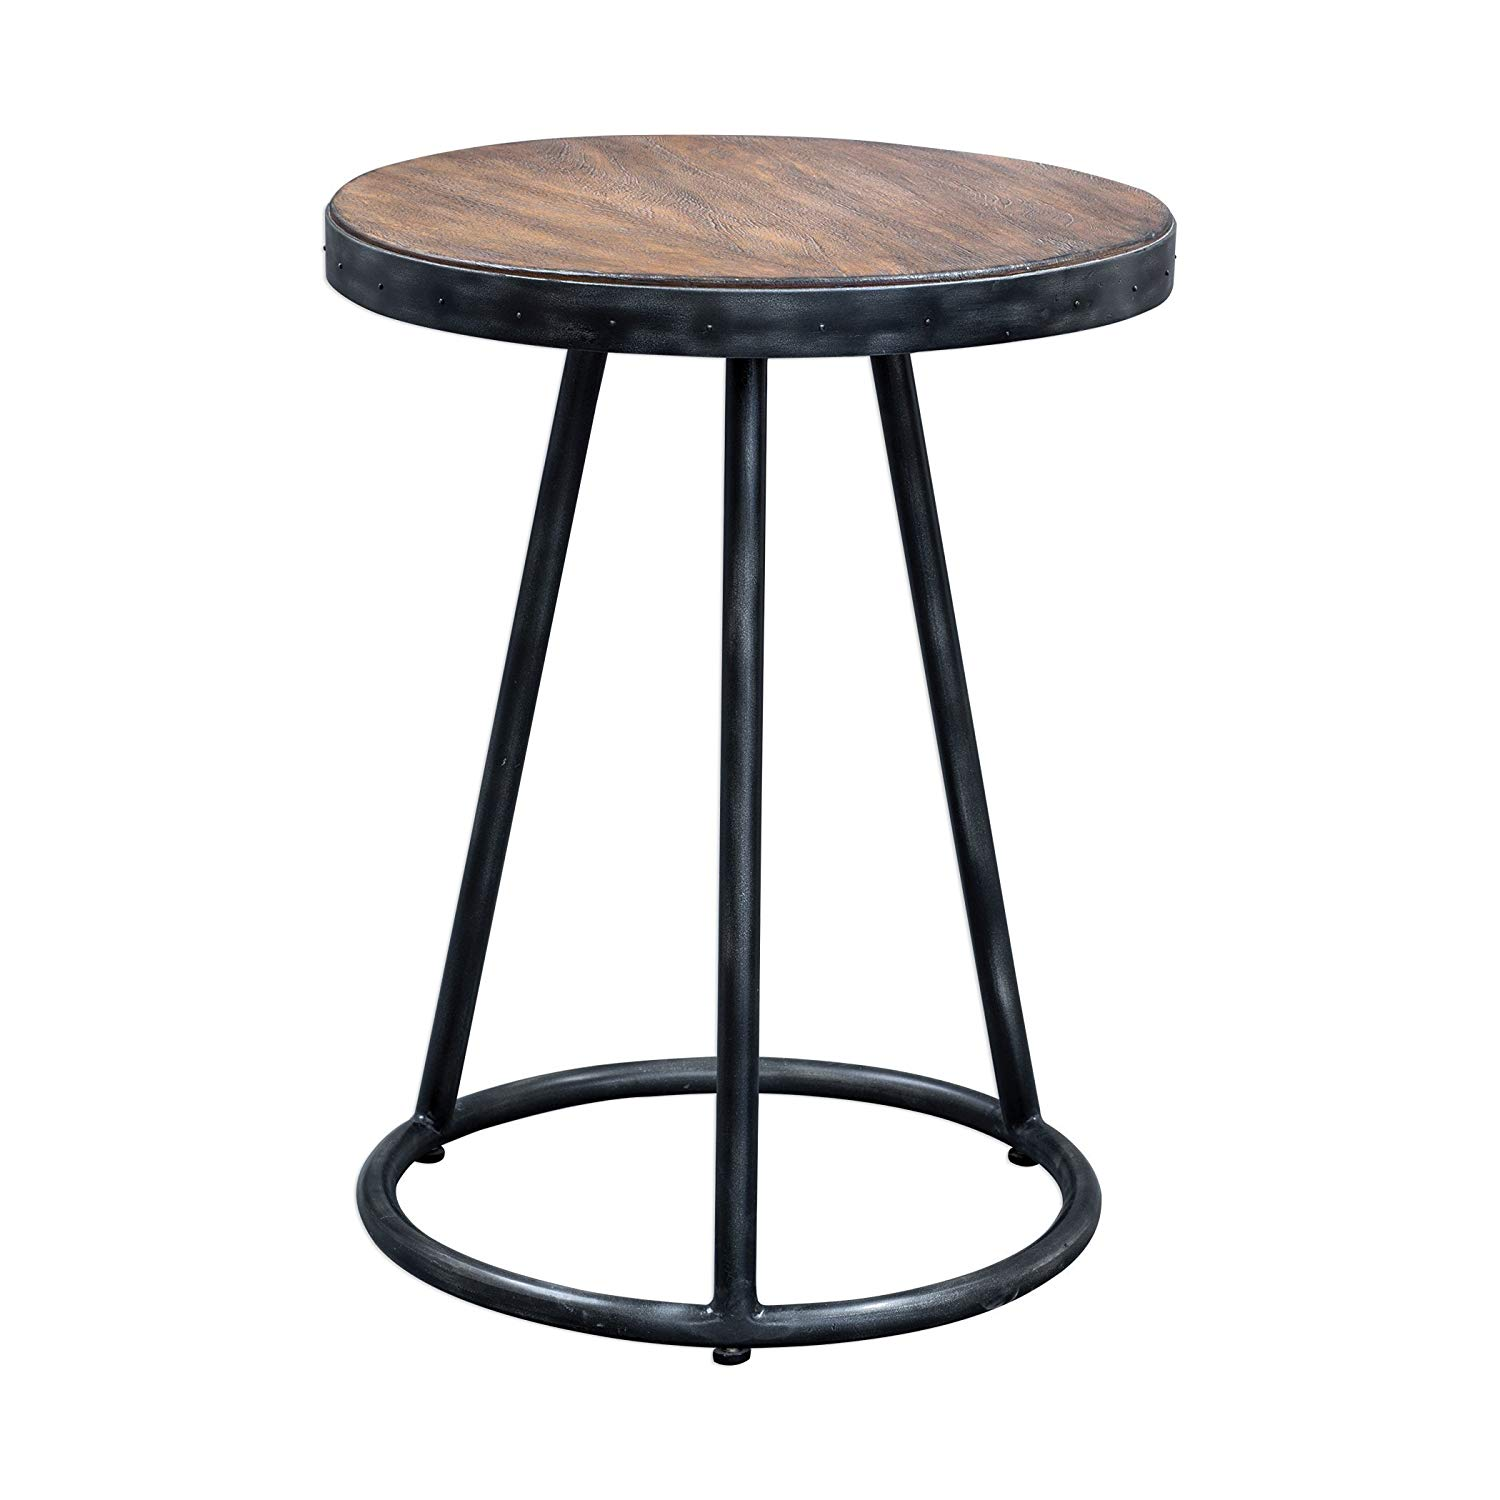 swanky home round industrial mini accent table dfl antique gold faceted with glass top riveted ring wood iron vintage style kitchen dining corner stand outdoor lounge chairs small